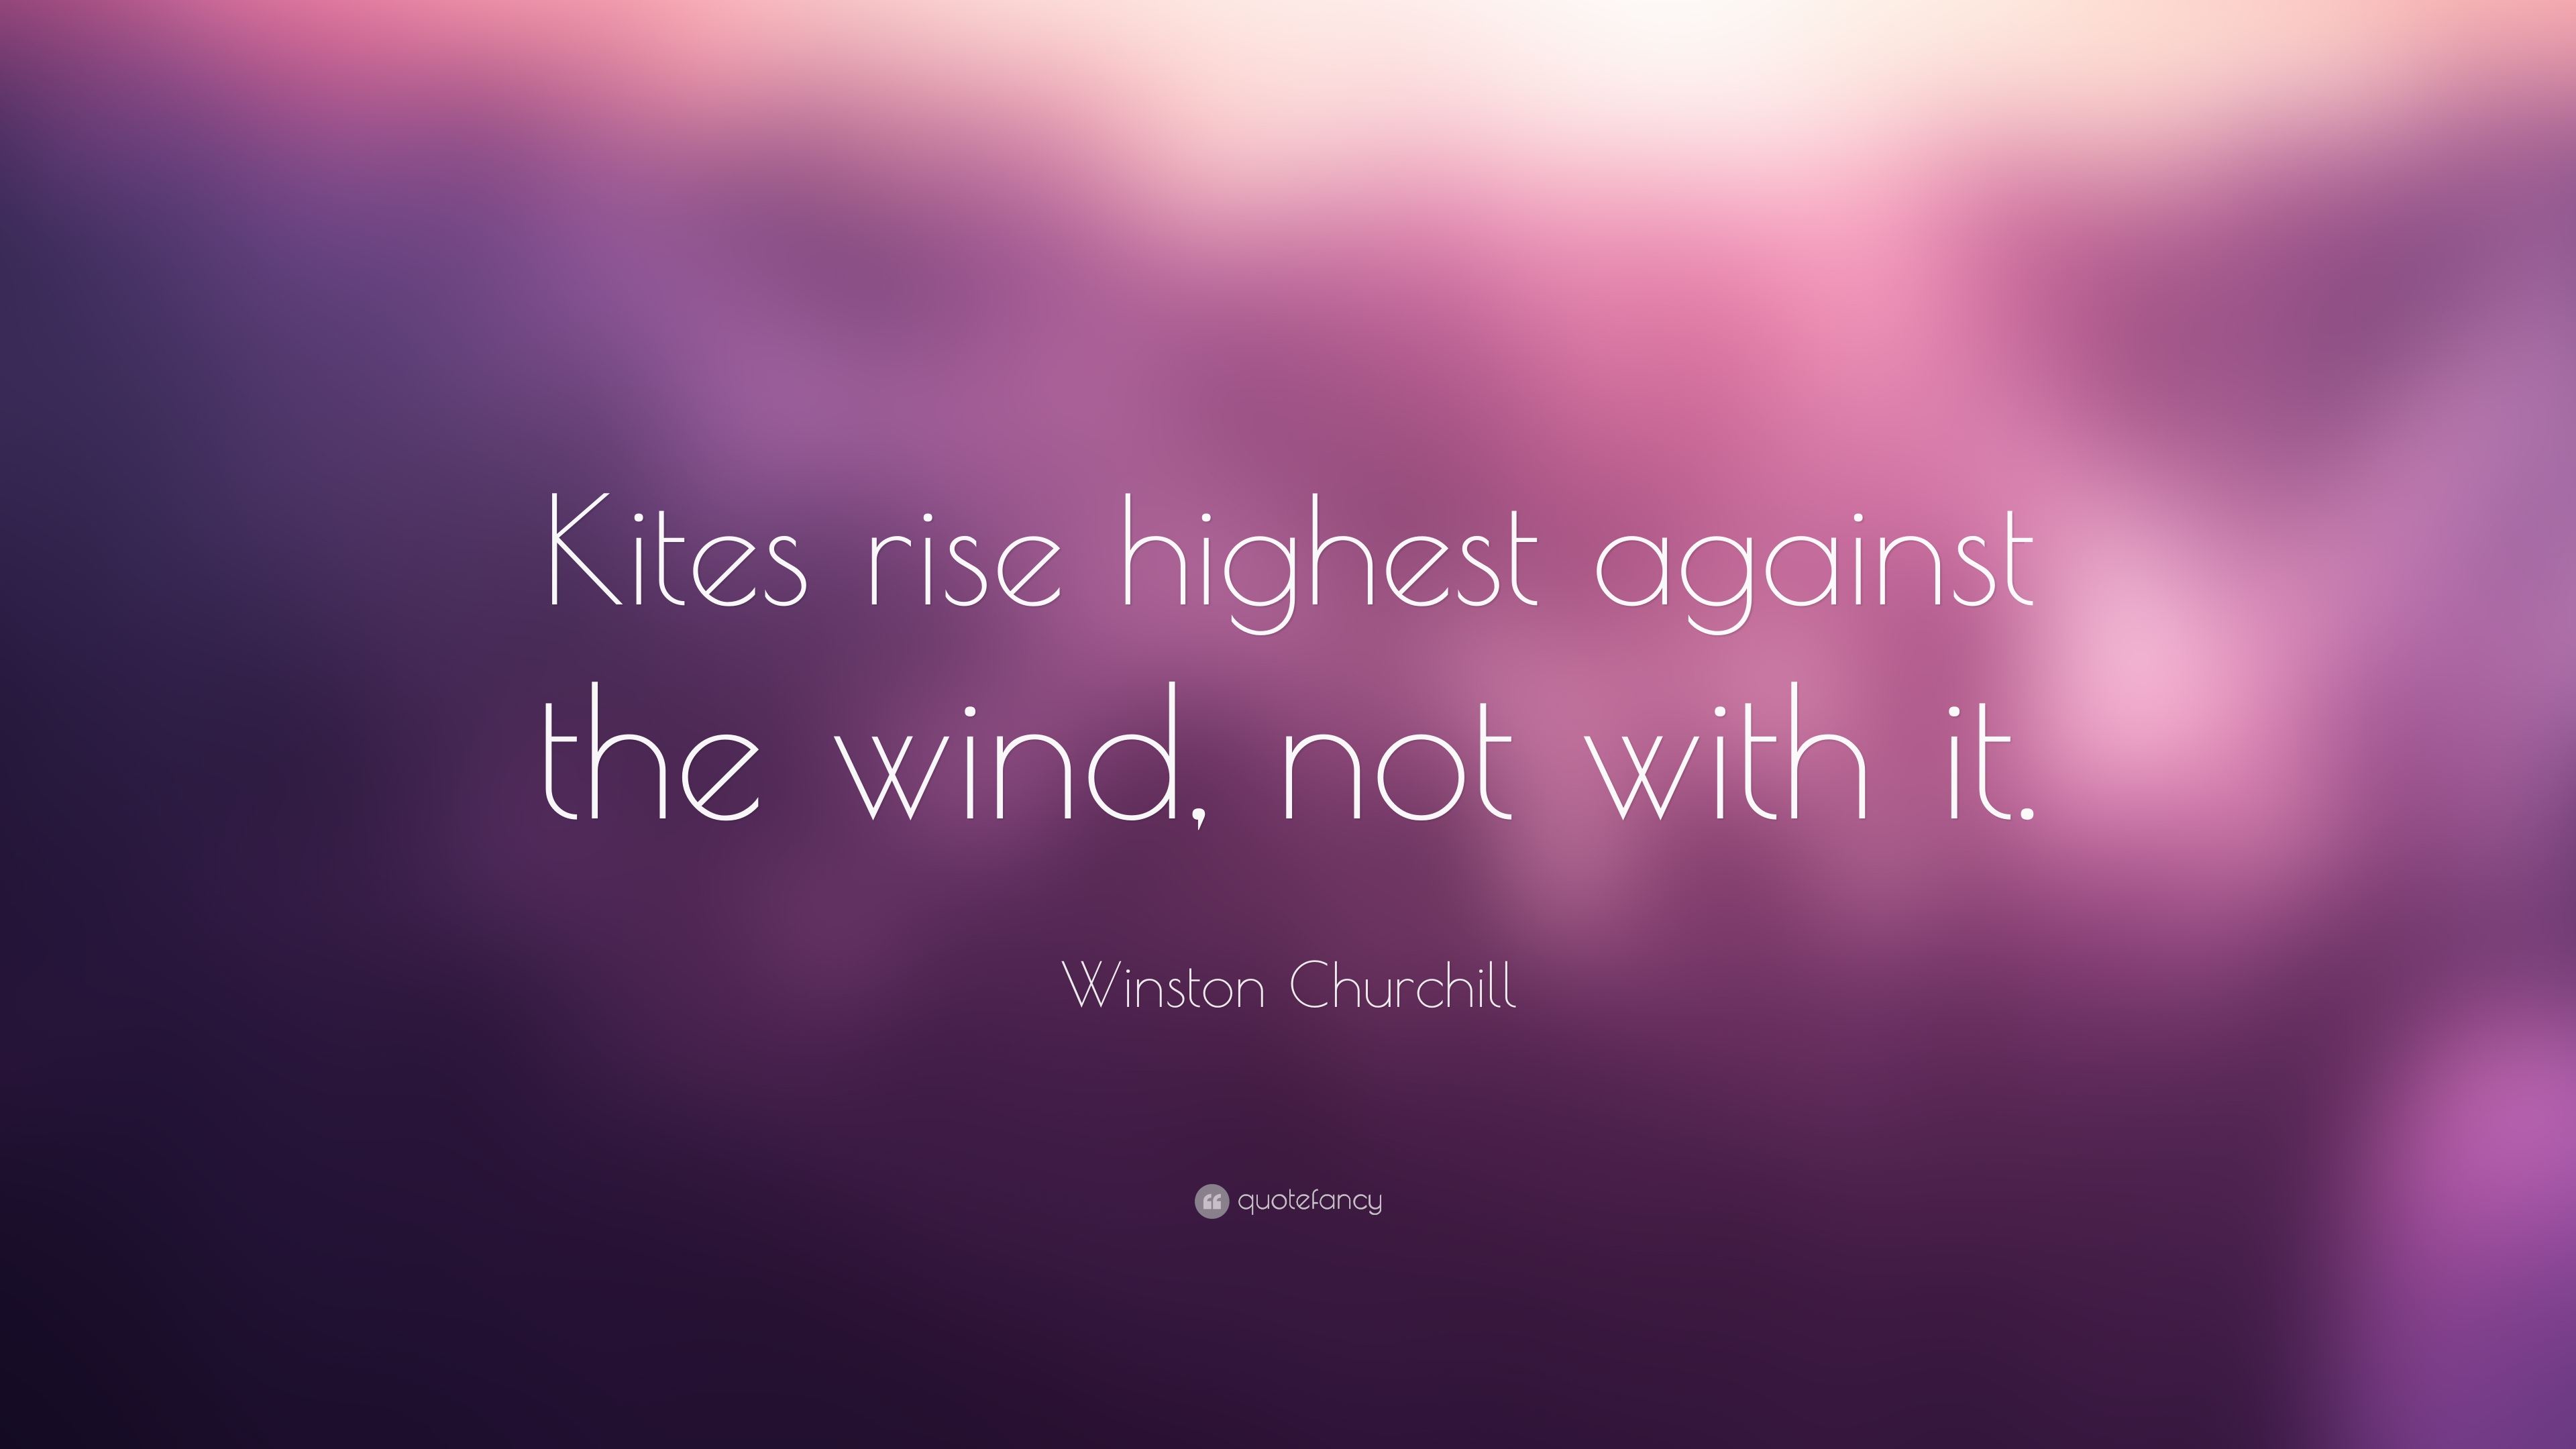 Winston Churchill Quotes 100 Wallpapers Quotefancy